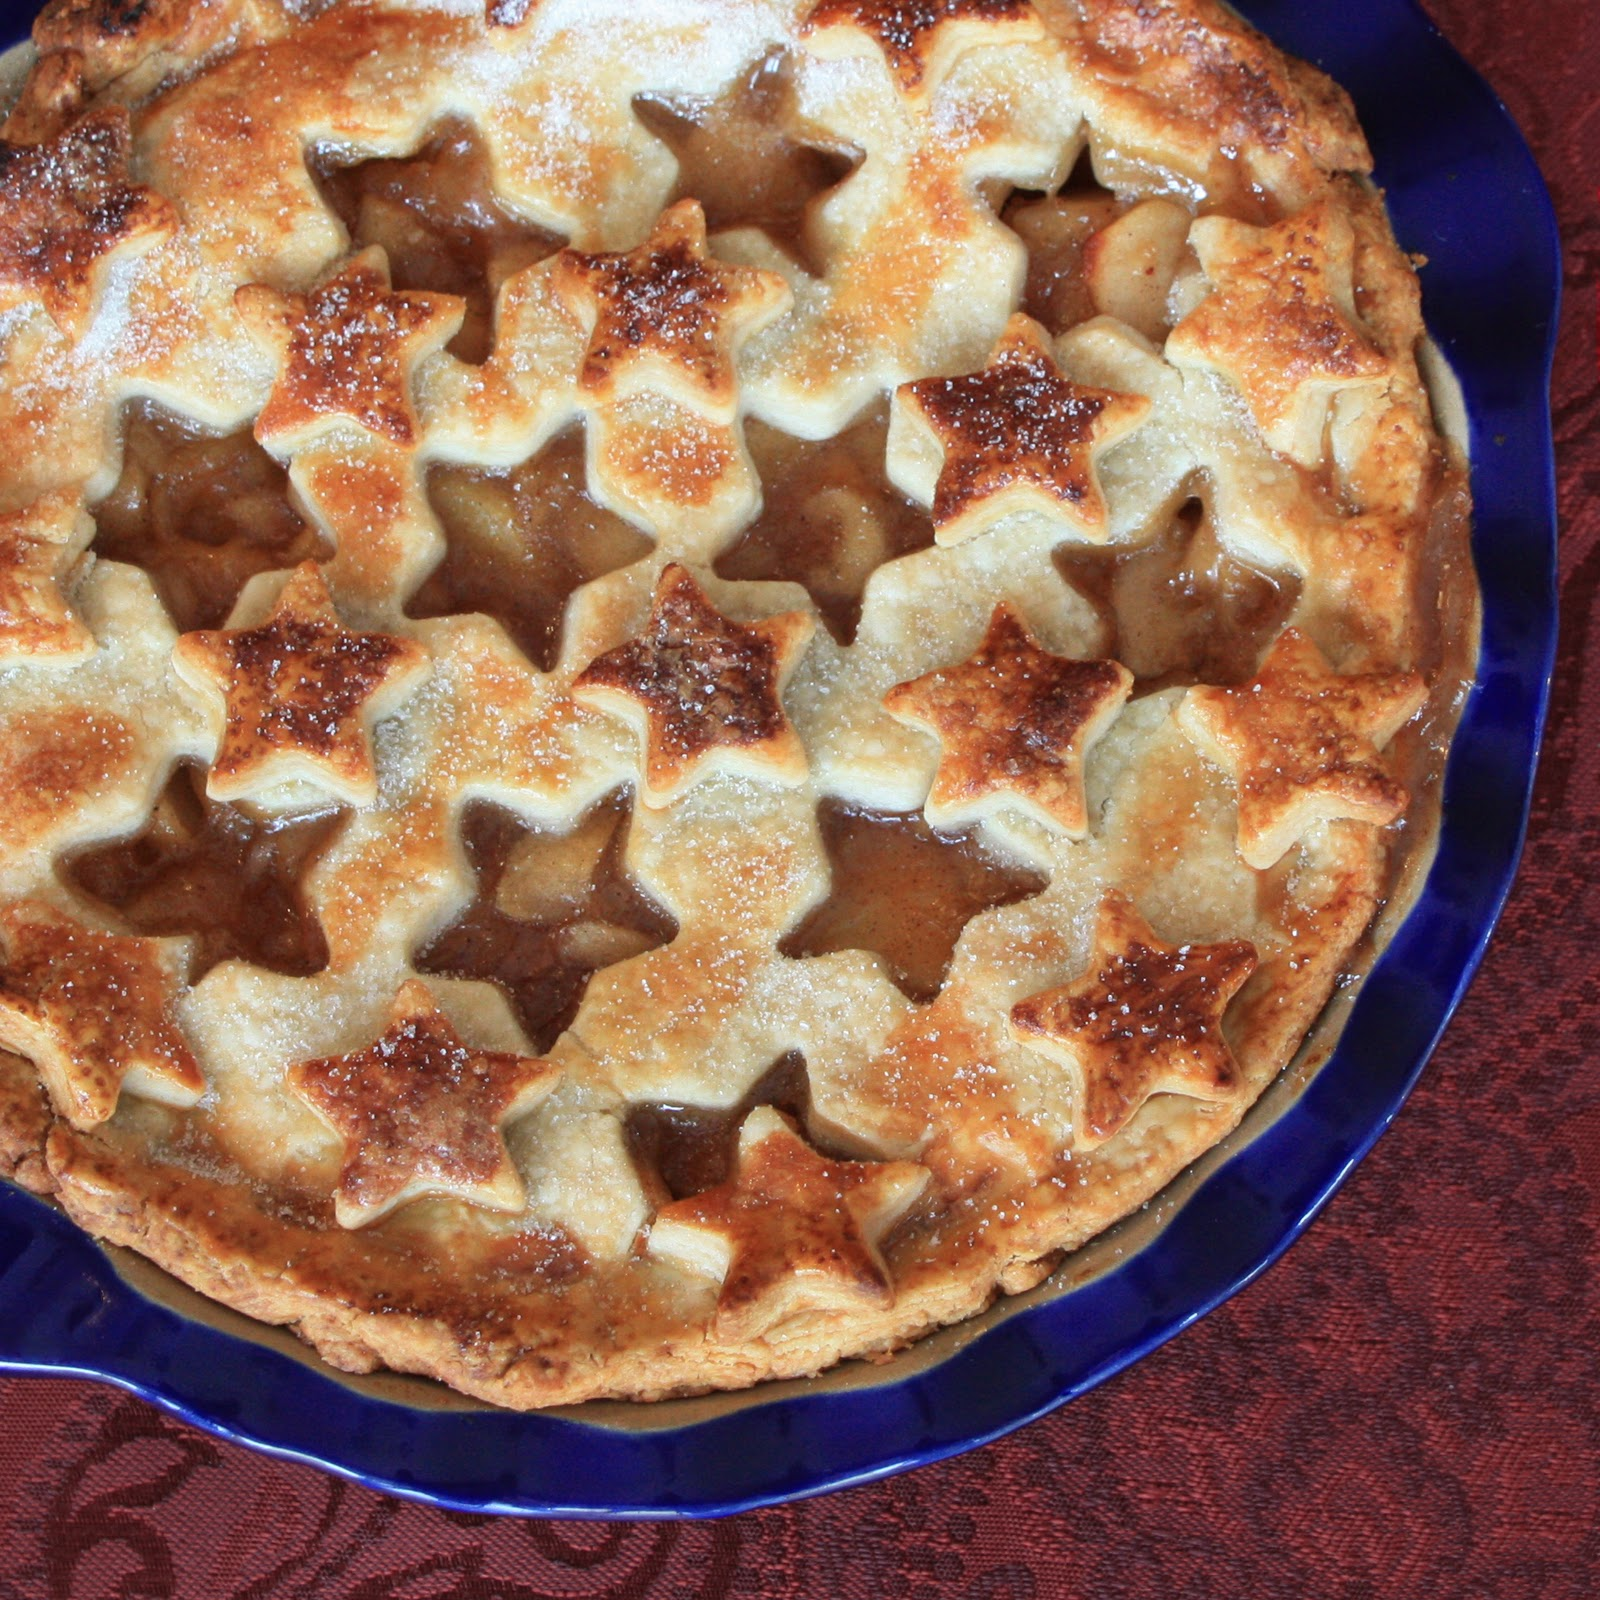 Sprinkle Charms: Old-Fashioned Apple Pie